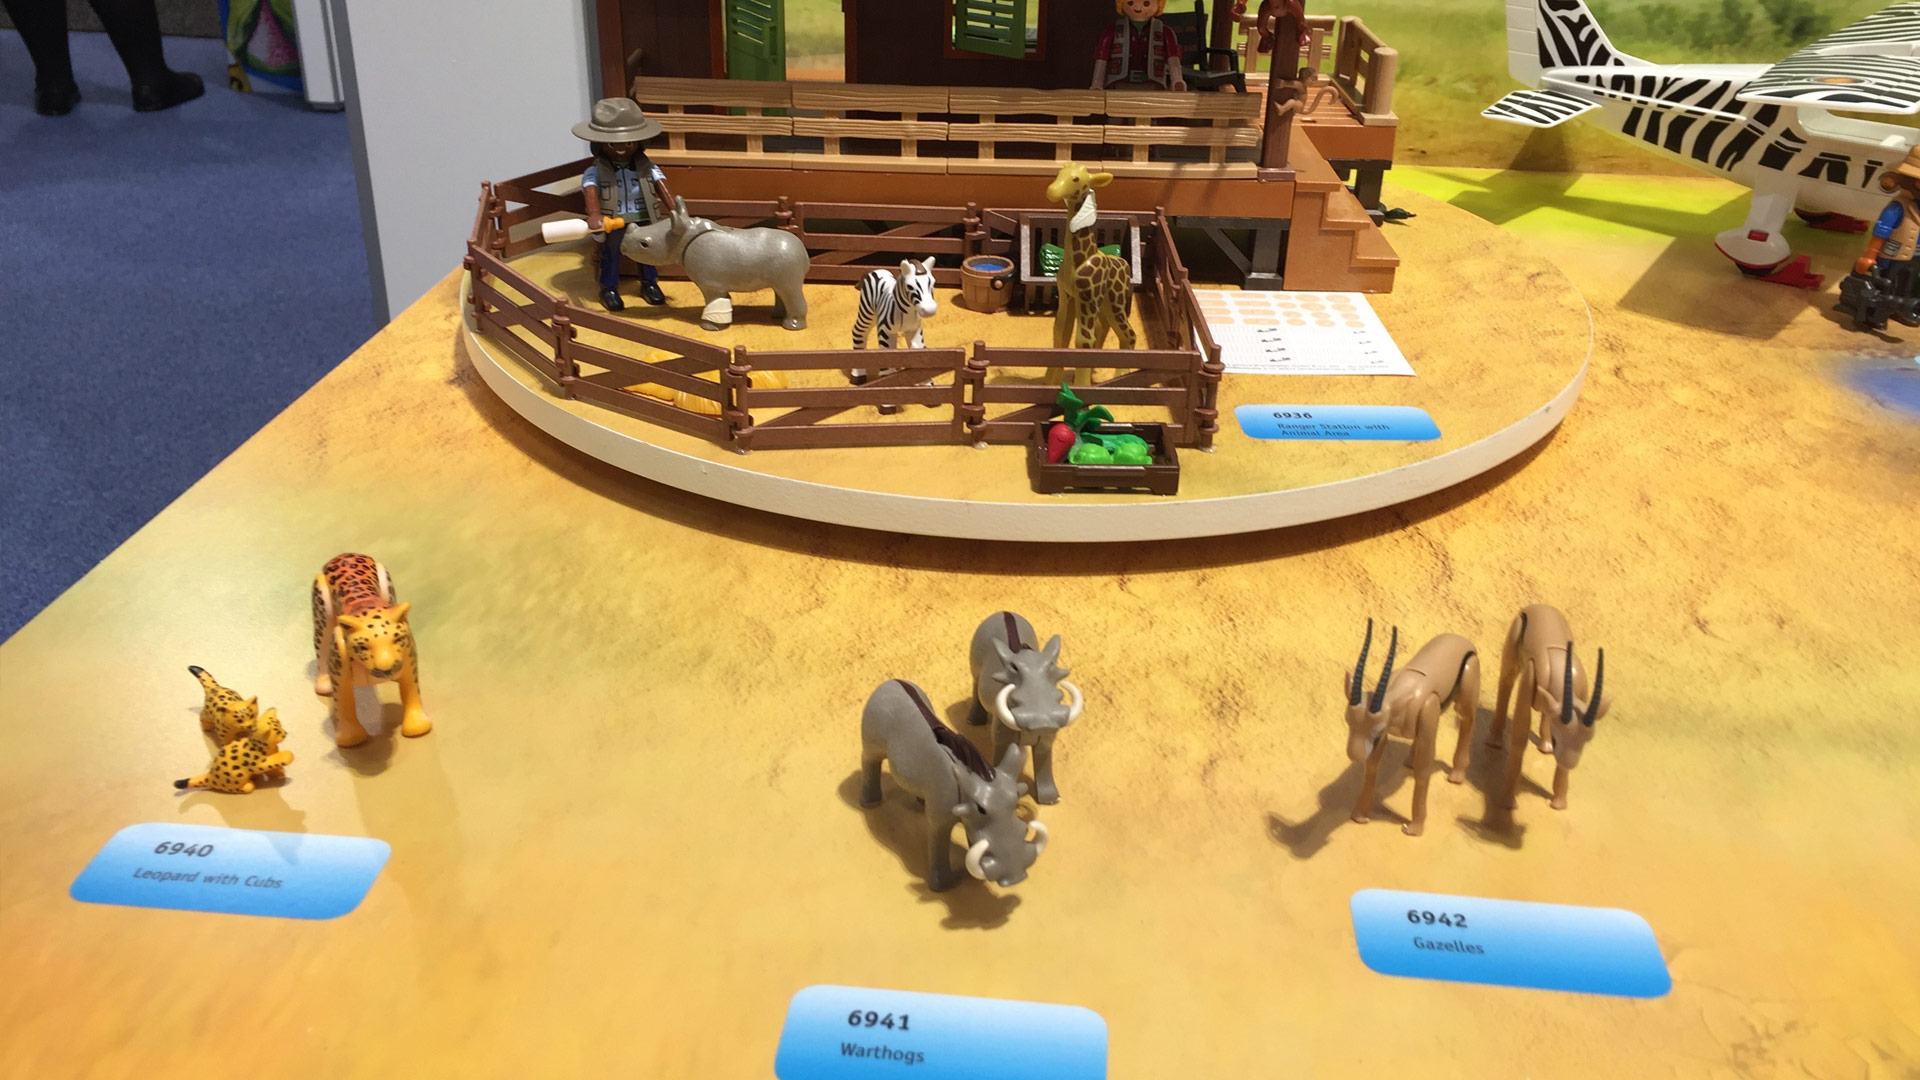 Playmobil Wildlife Sets 6940 Leopard with Cubs, 6941 Warthogs, 6942 Gazelles at Toy Fair 2017